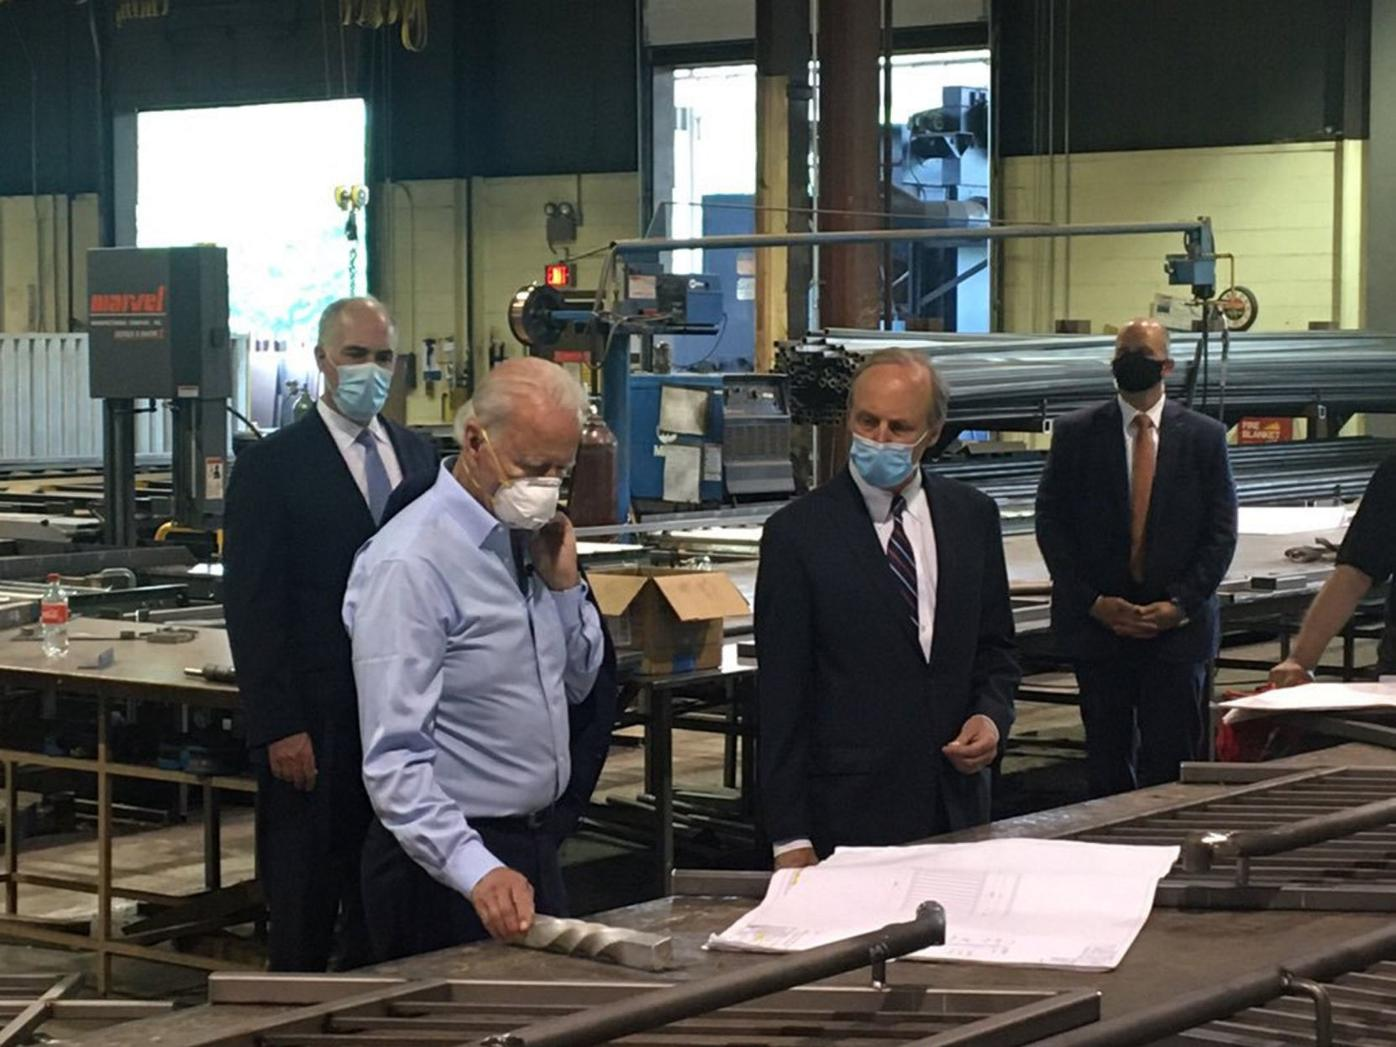 Biden pitches economic plan at Dunmore facility